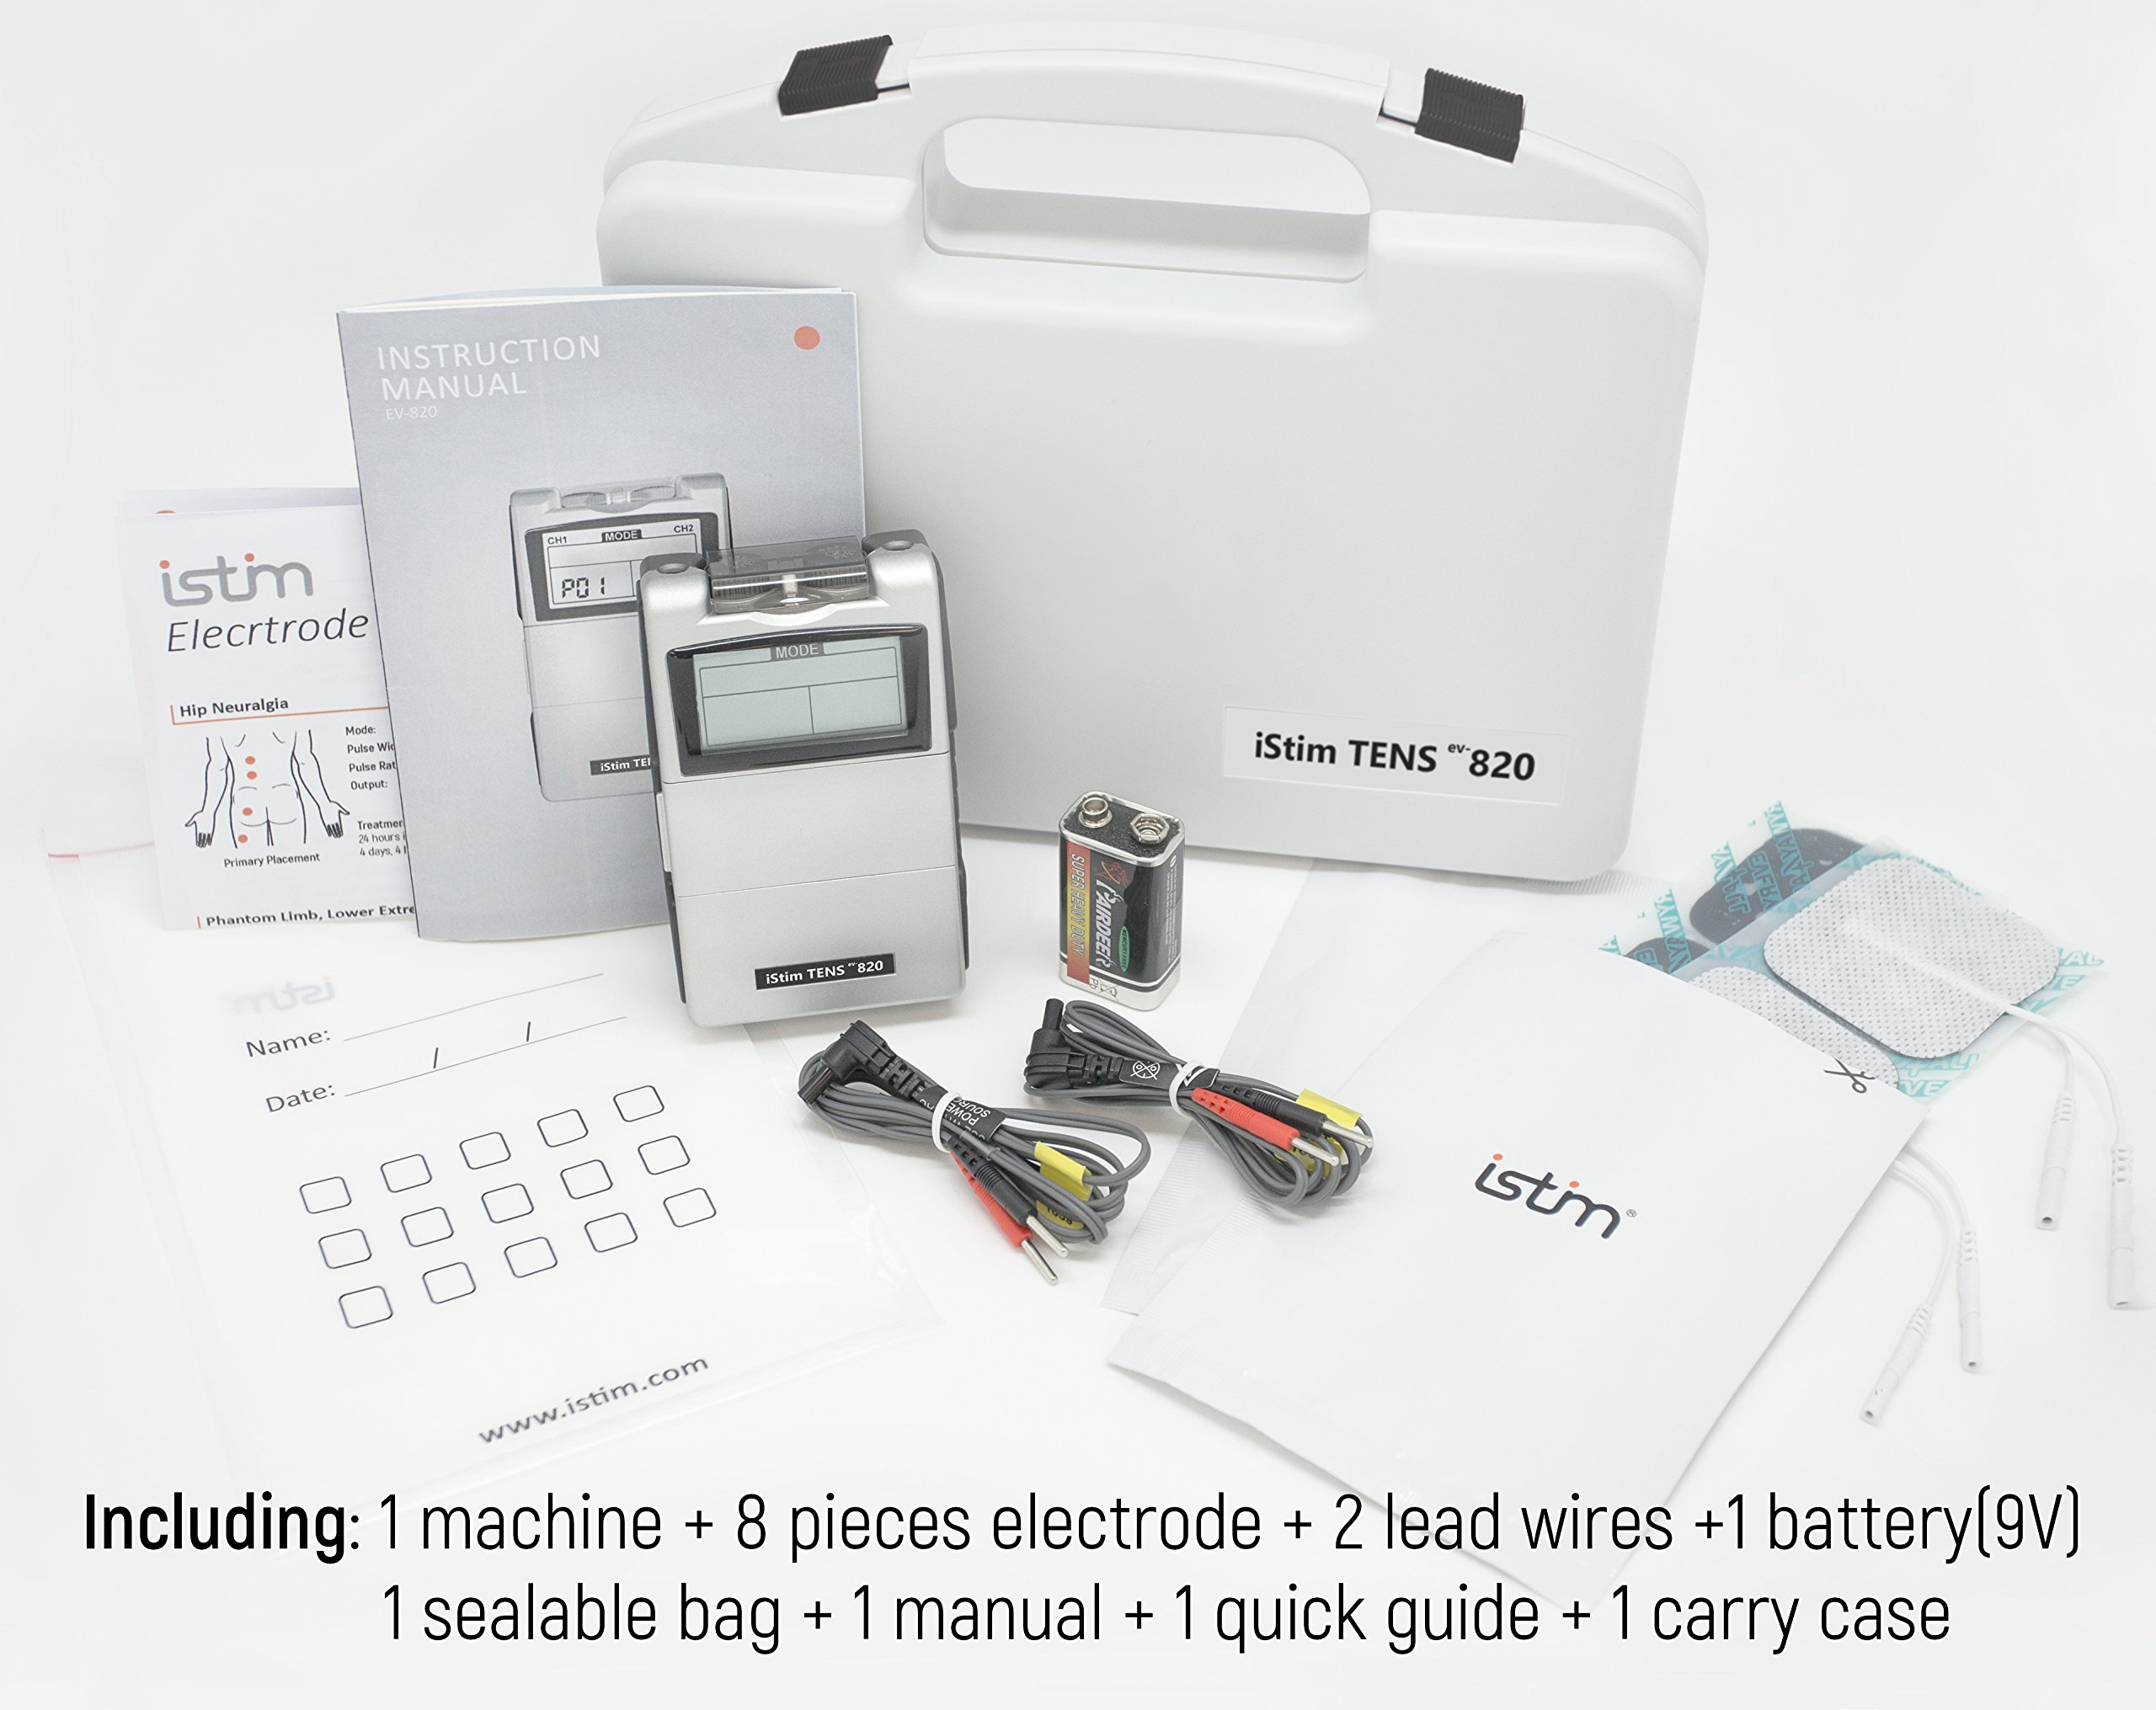 FDA Cleared TENS Unit iStim EV-820 TENS Machine for Pain Management, Back Pain and Rehabilitation by iSTIM (Image #6)